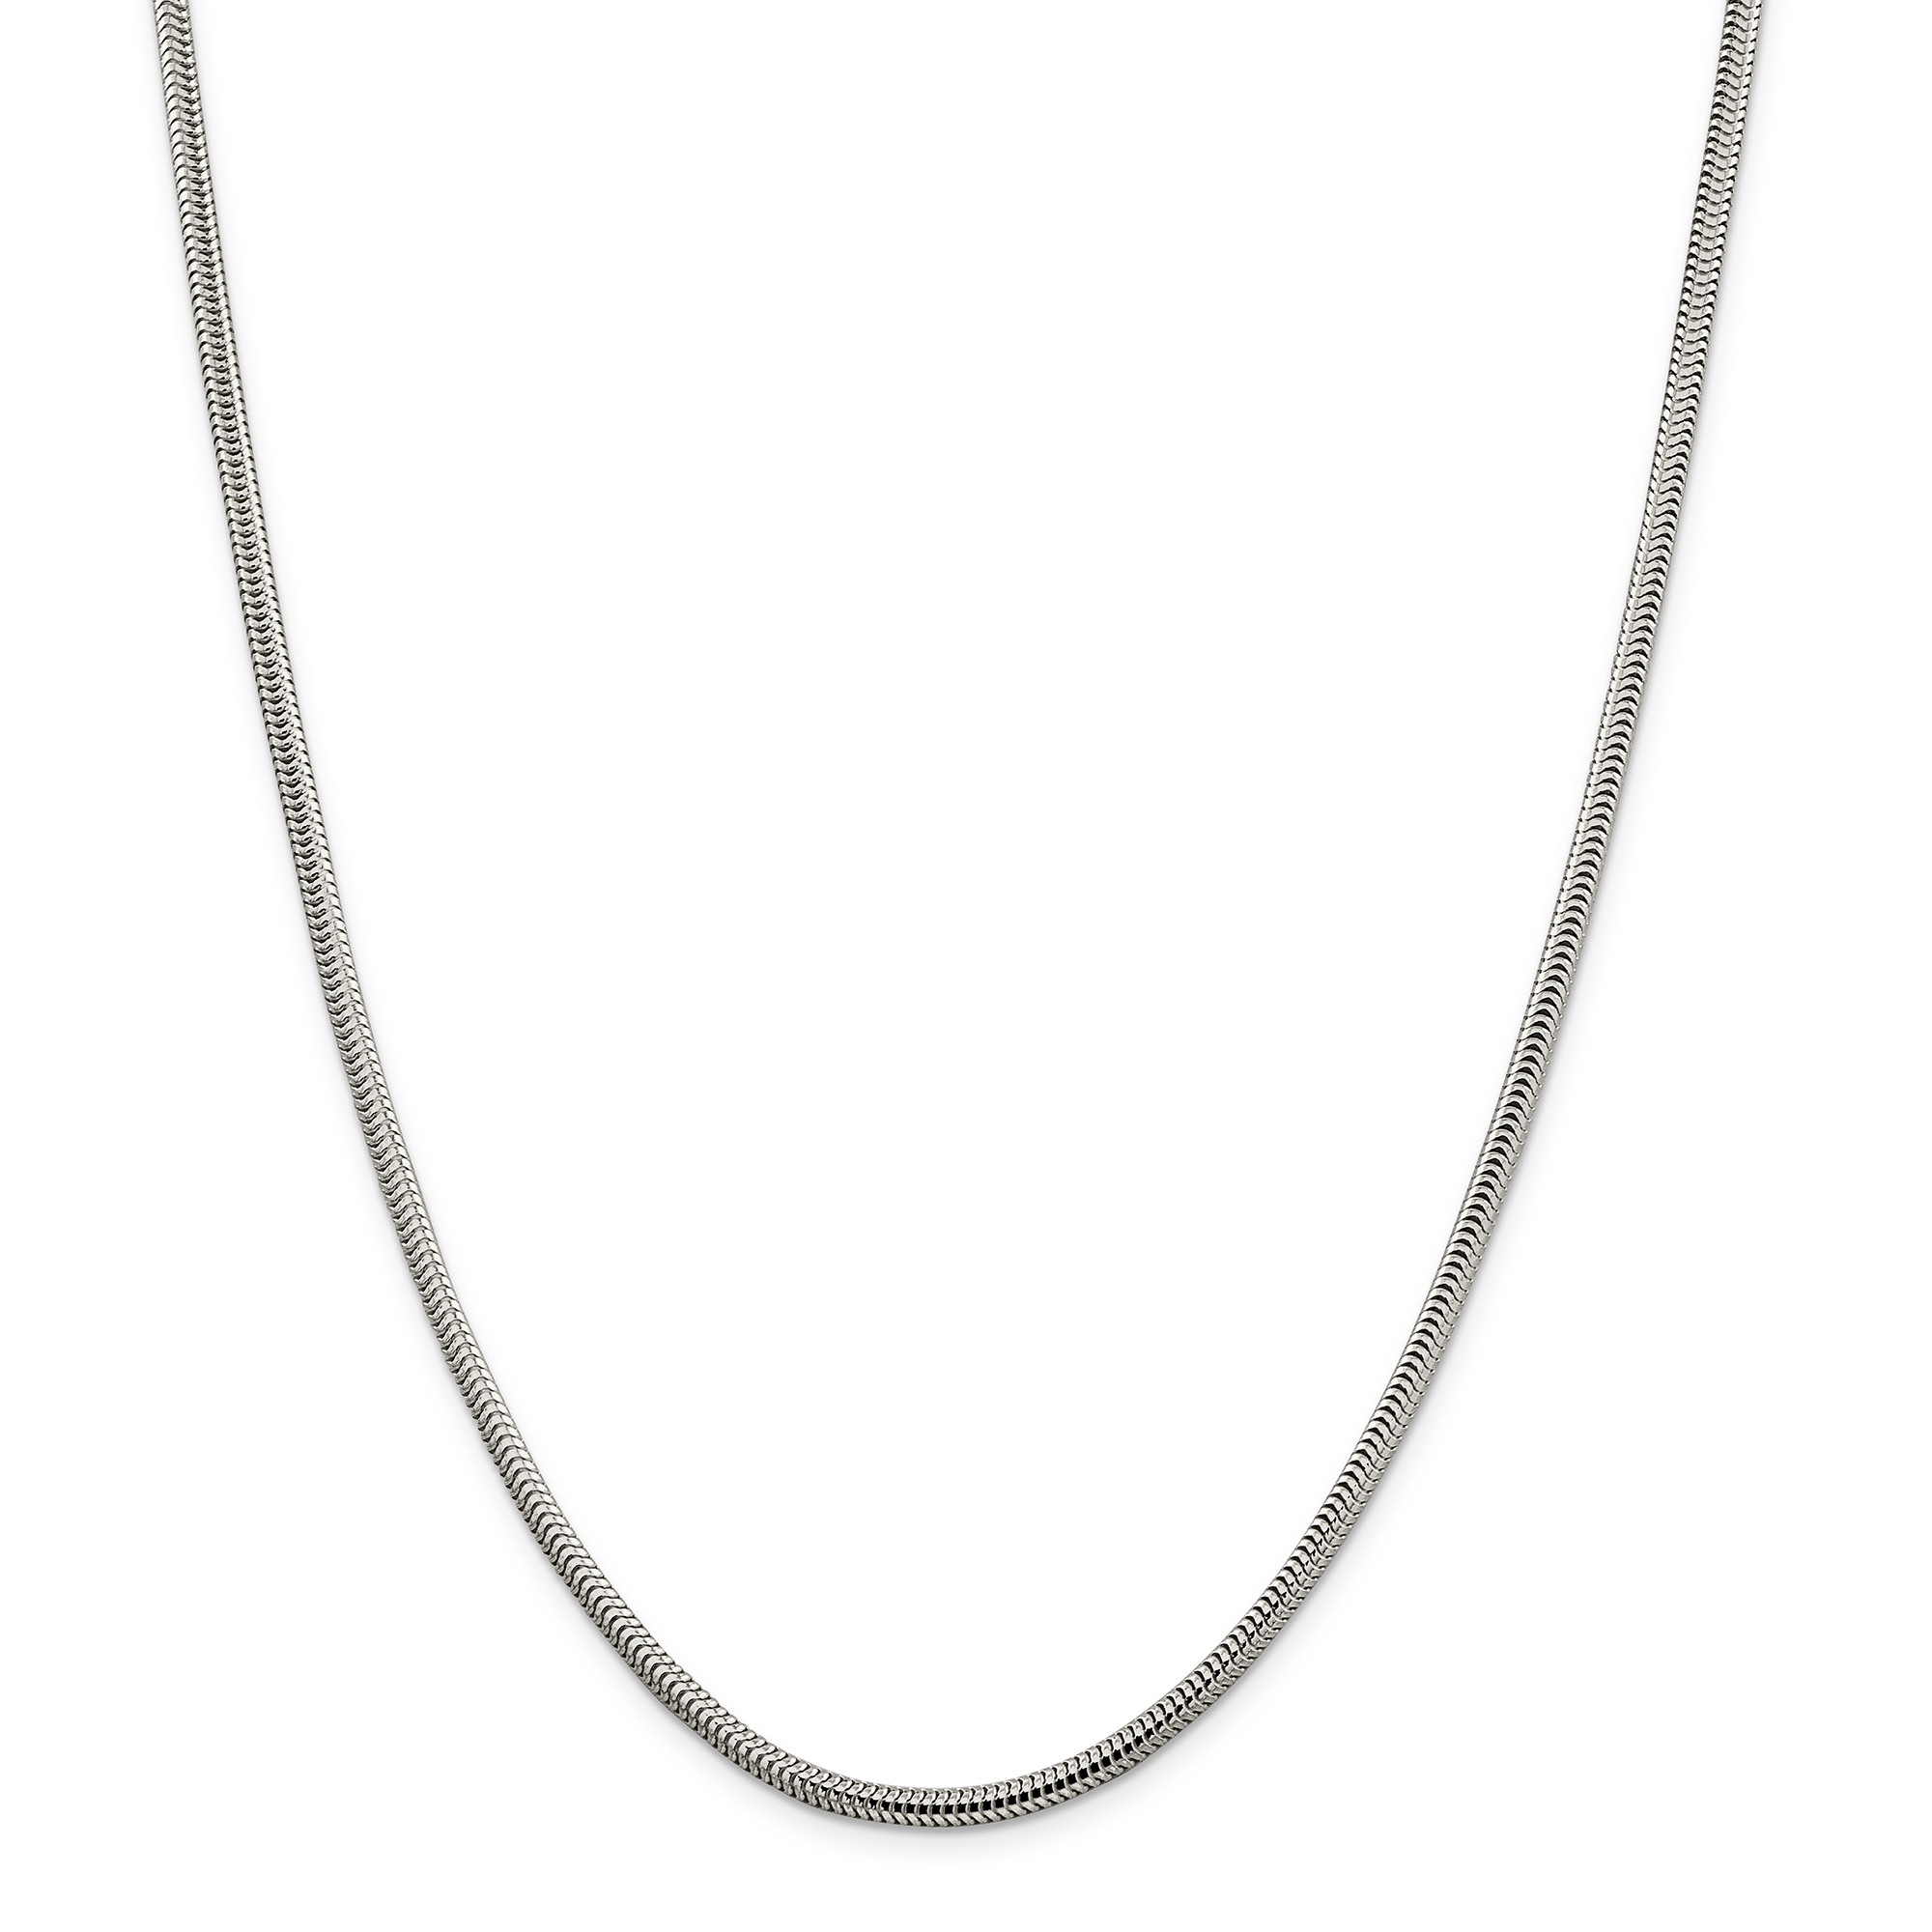 925 Sterling Silver 2.95mm Round Snake Chain 16 Inch - image 5 of 5